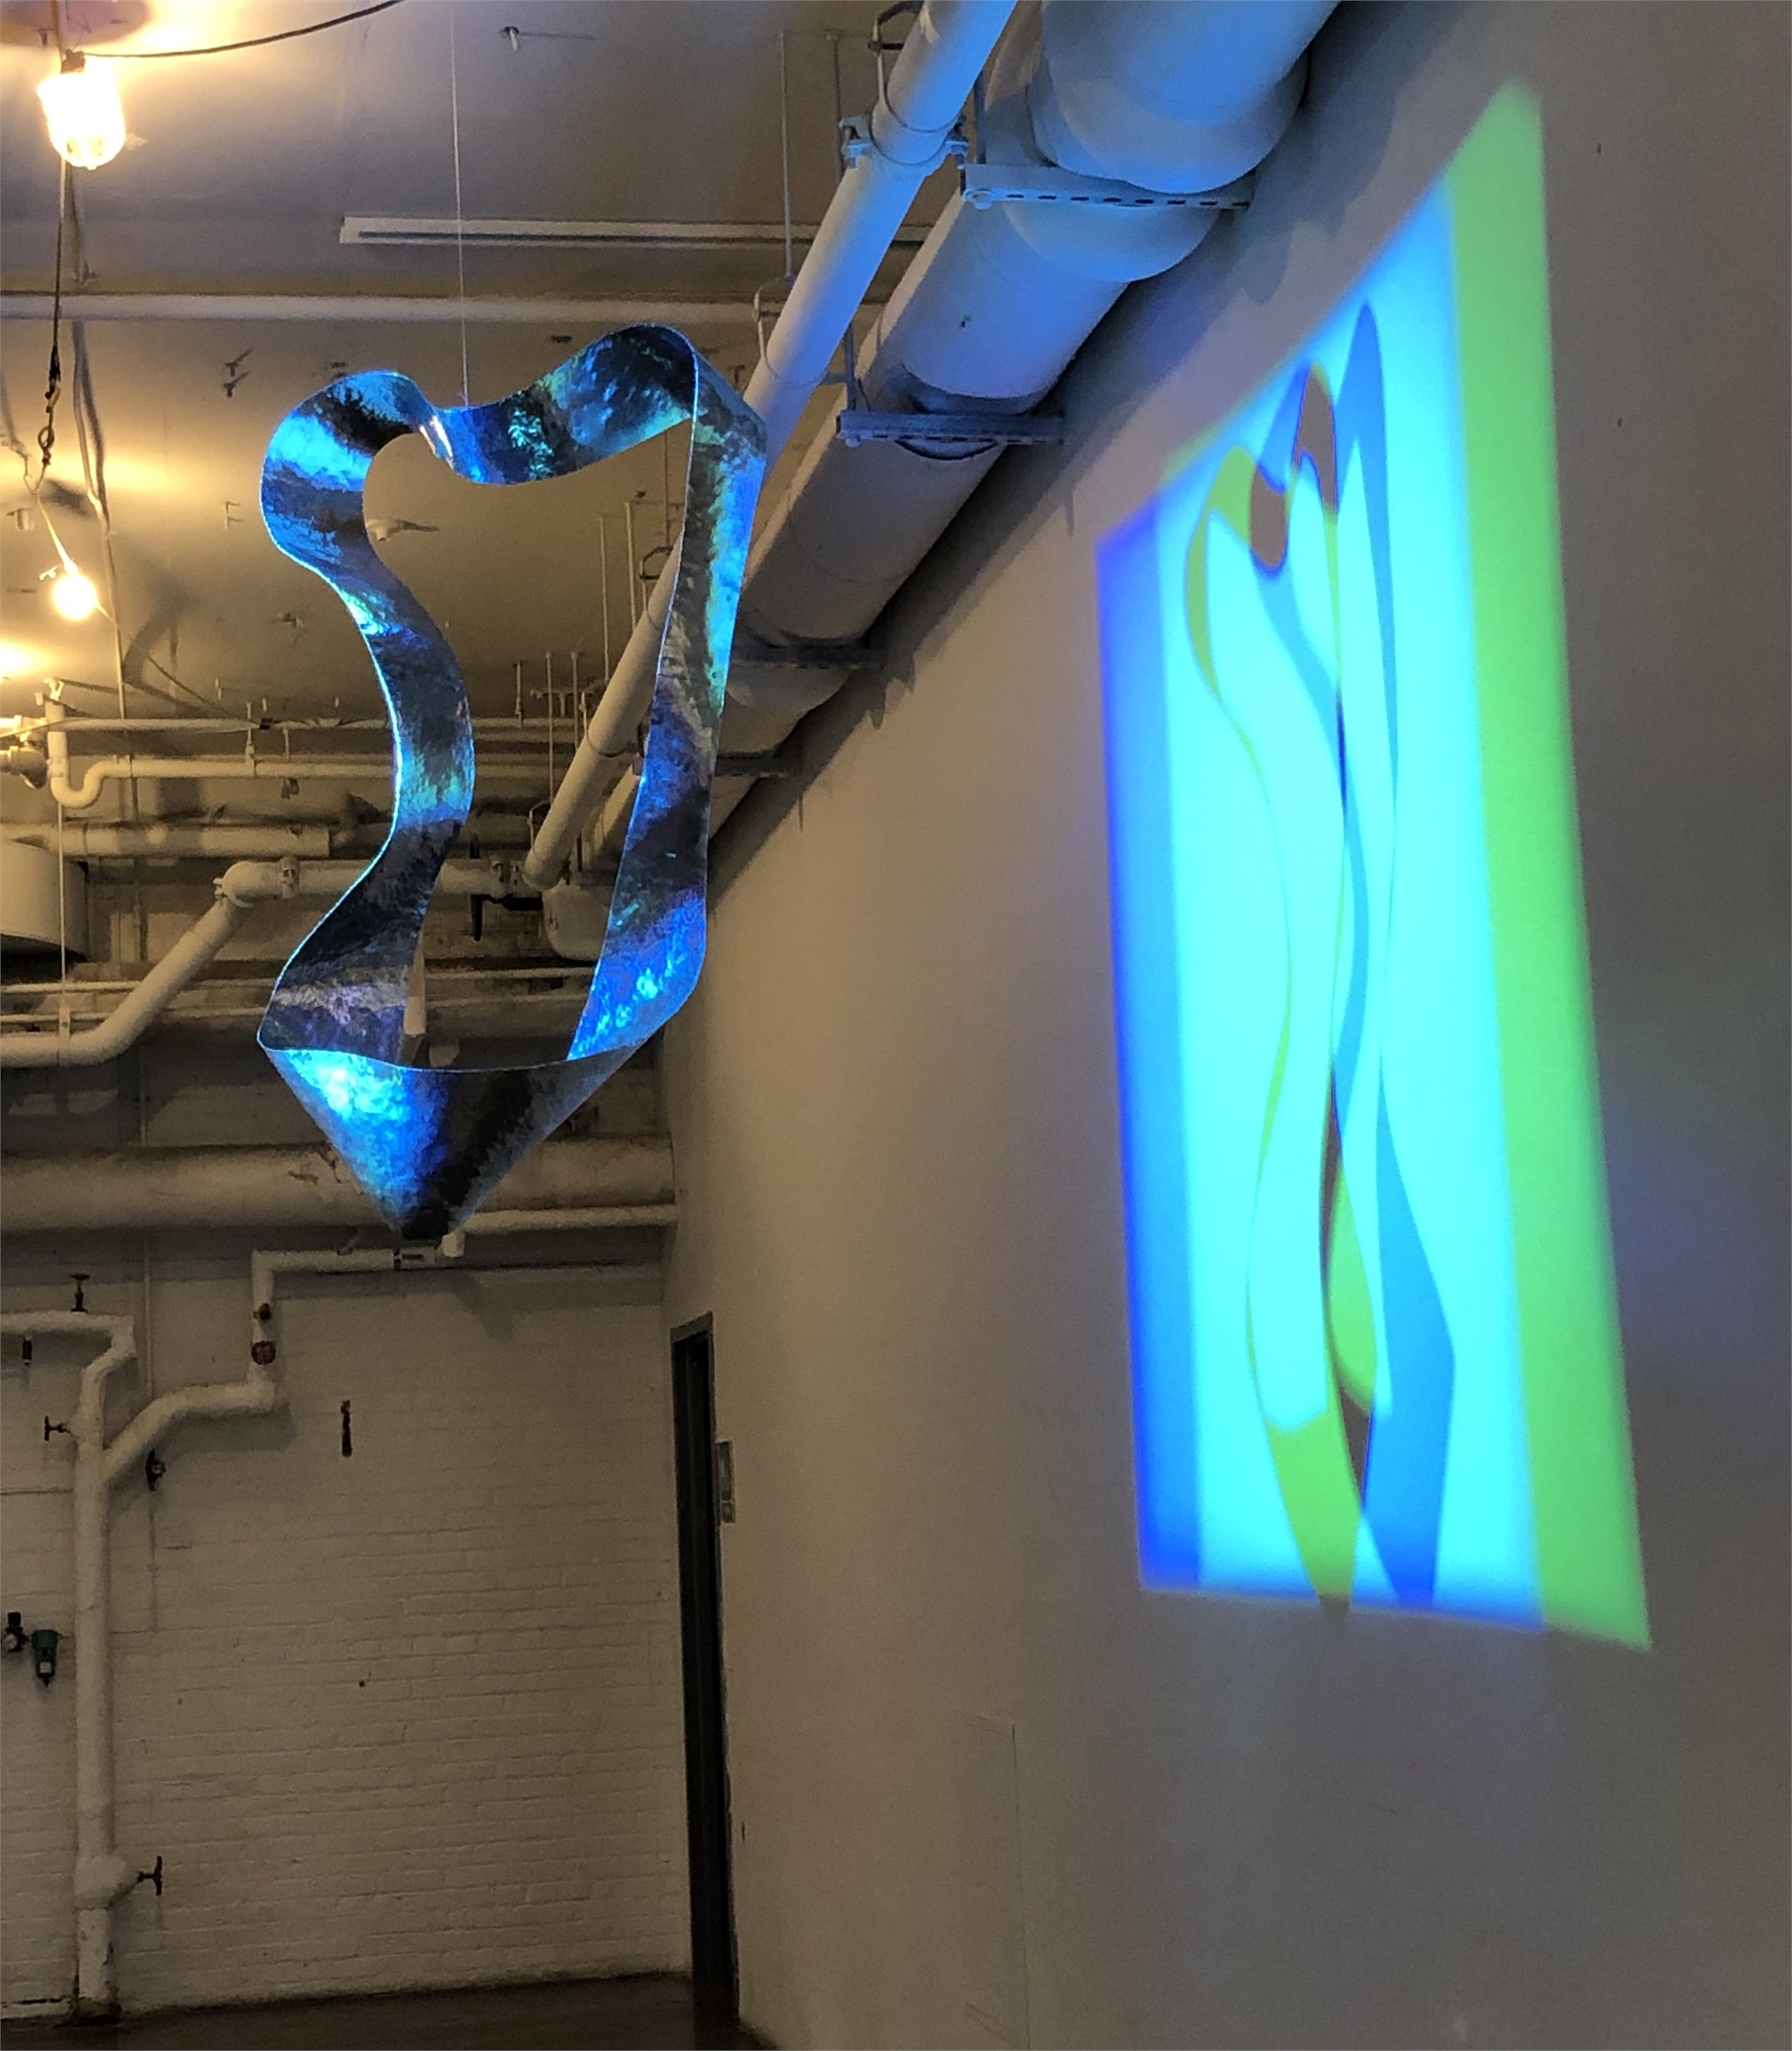 Aluminum and Light #1 by Jacques Jarrige and  Garret Linn